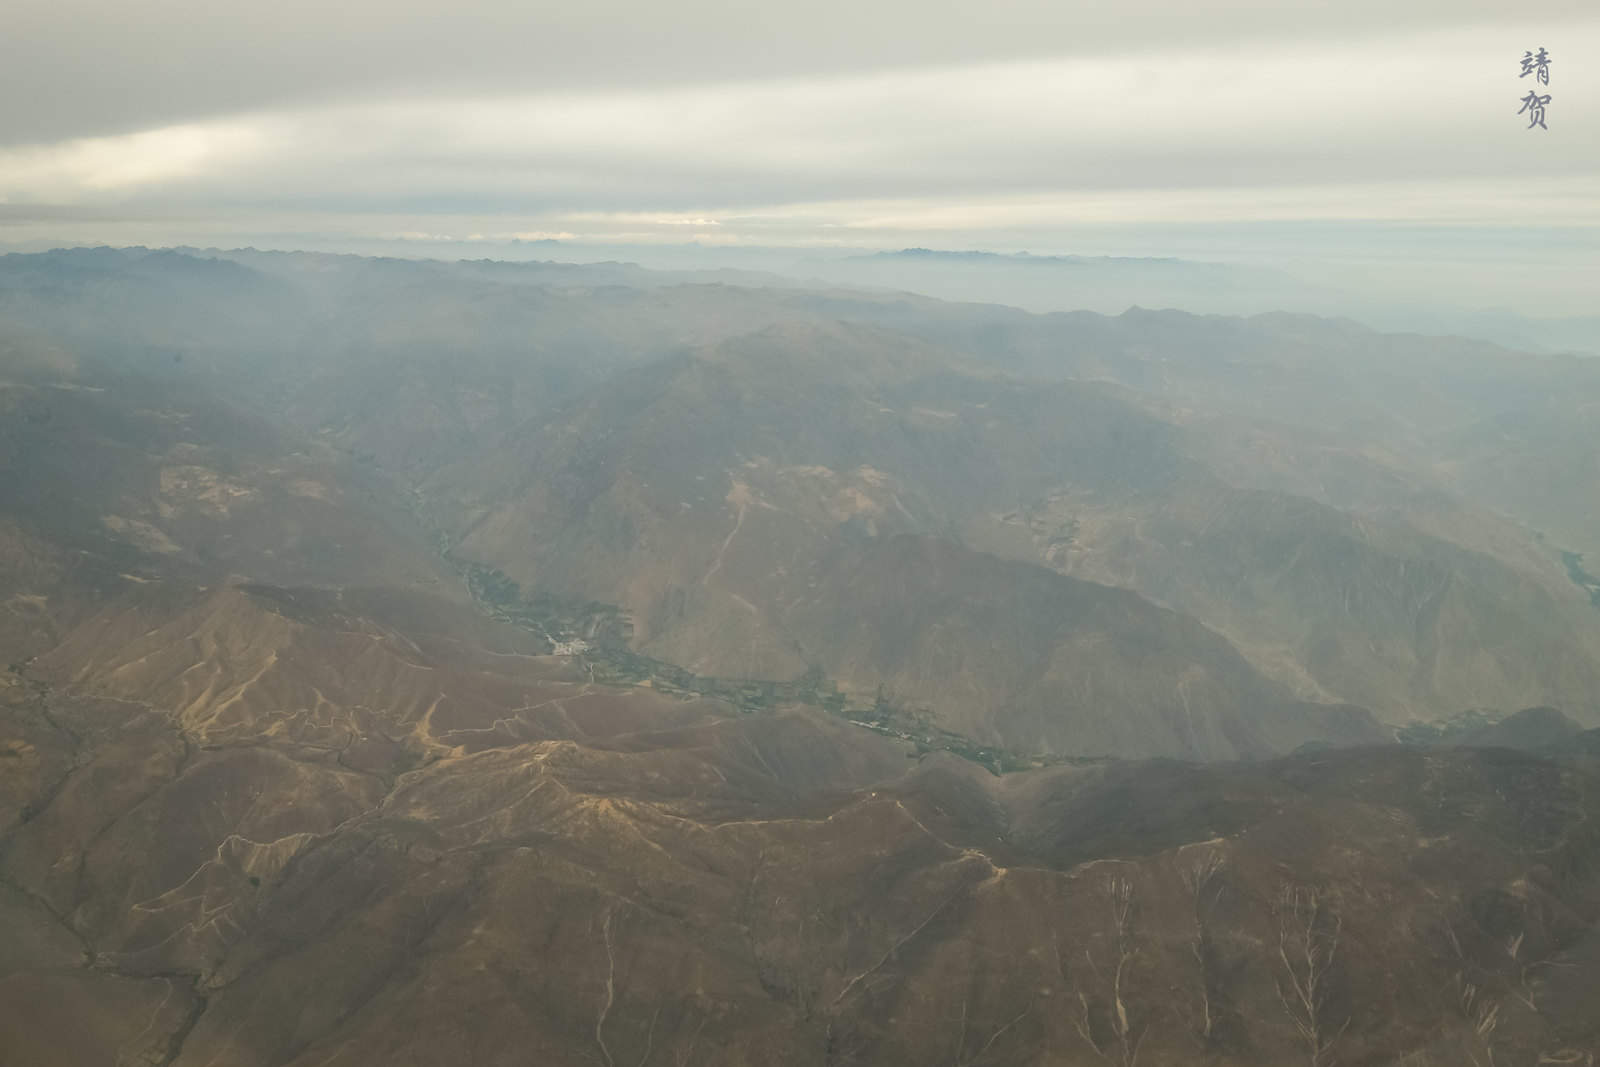 Flying past valleys